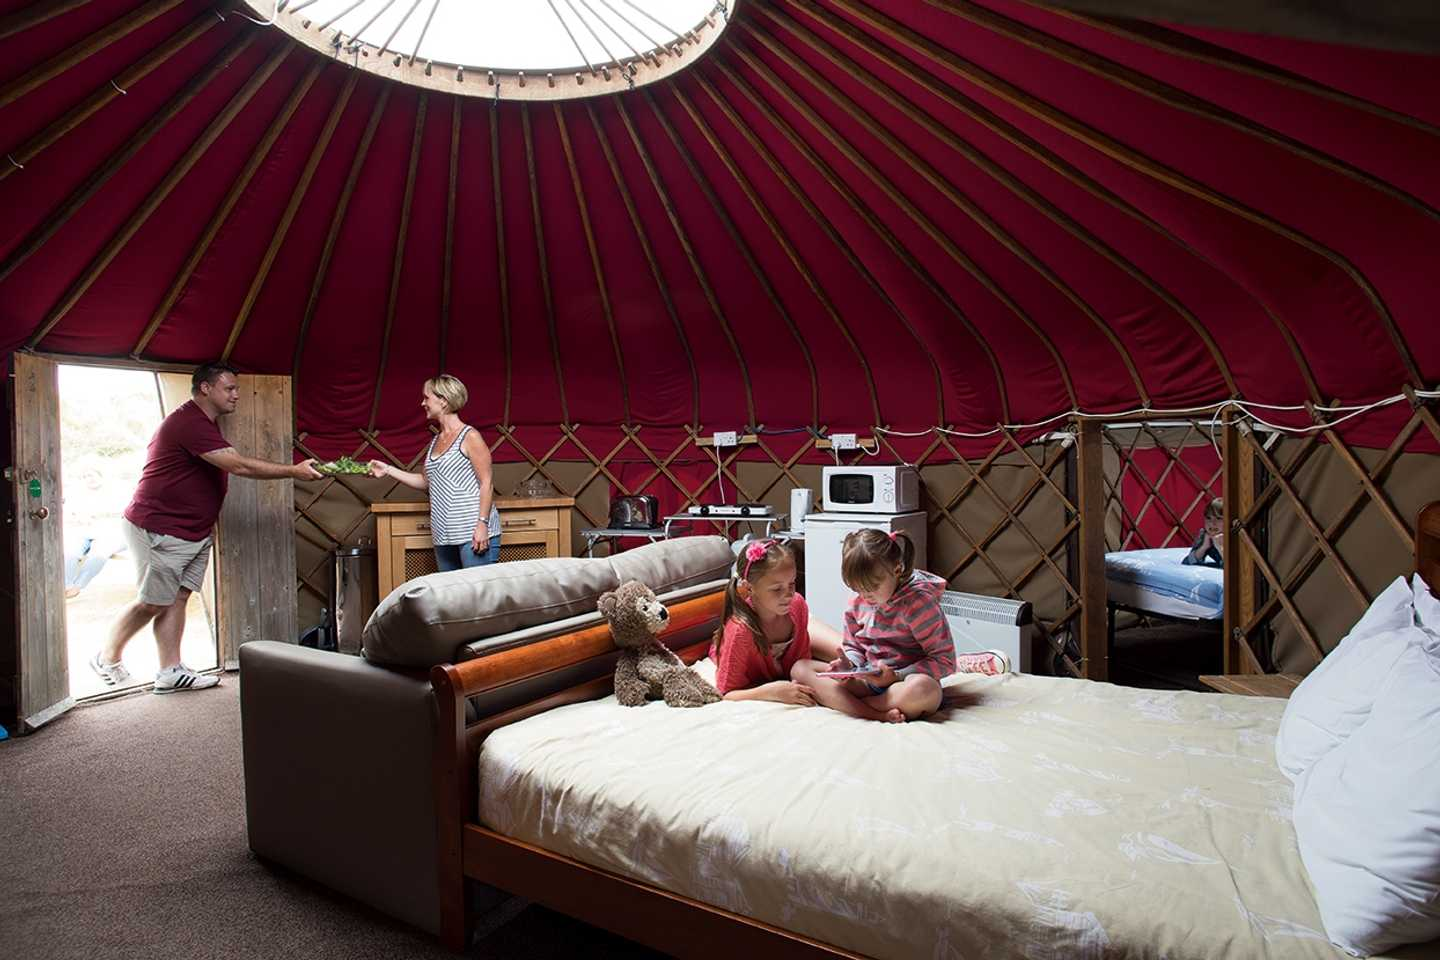 Interior of a Yurt at Perran Sands, Cornwall